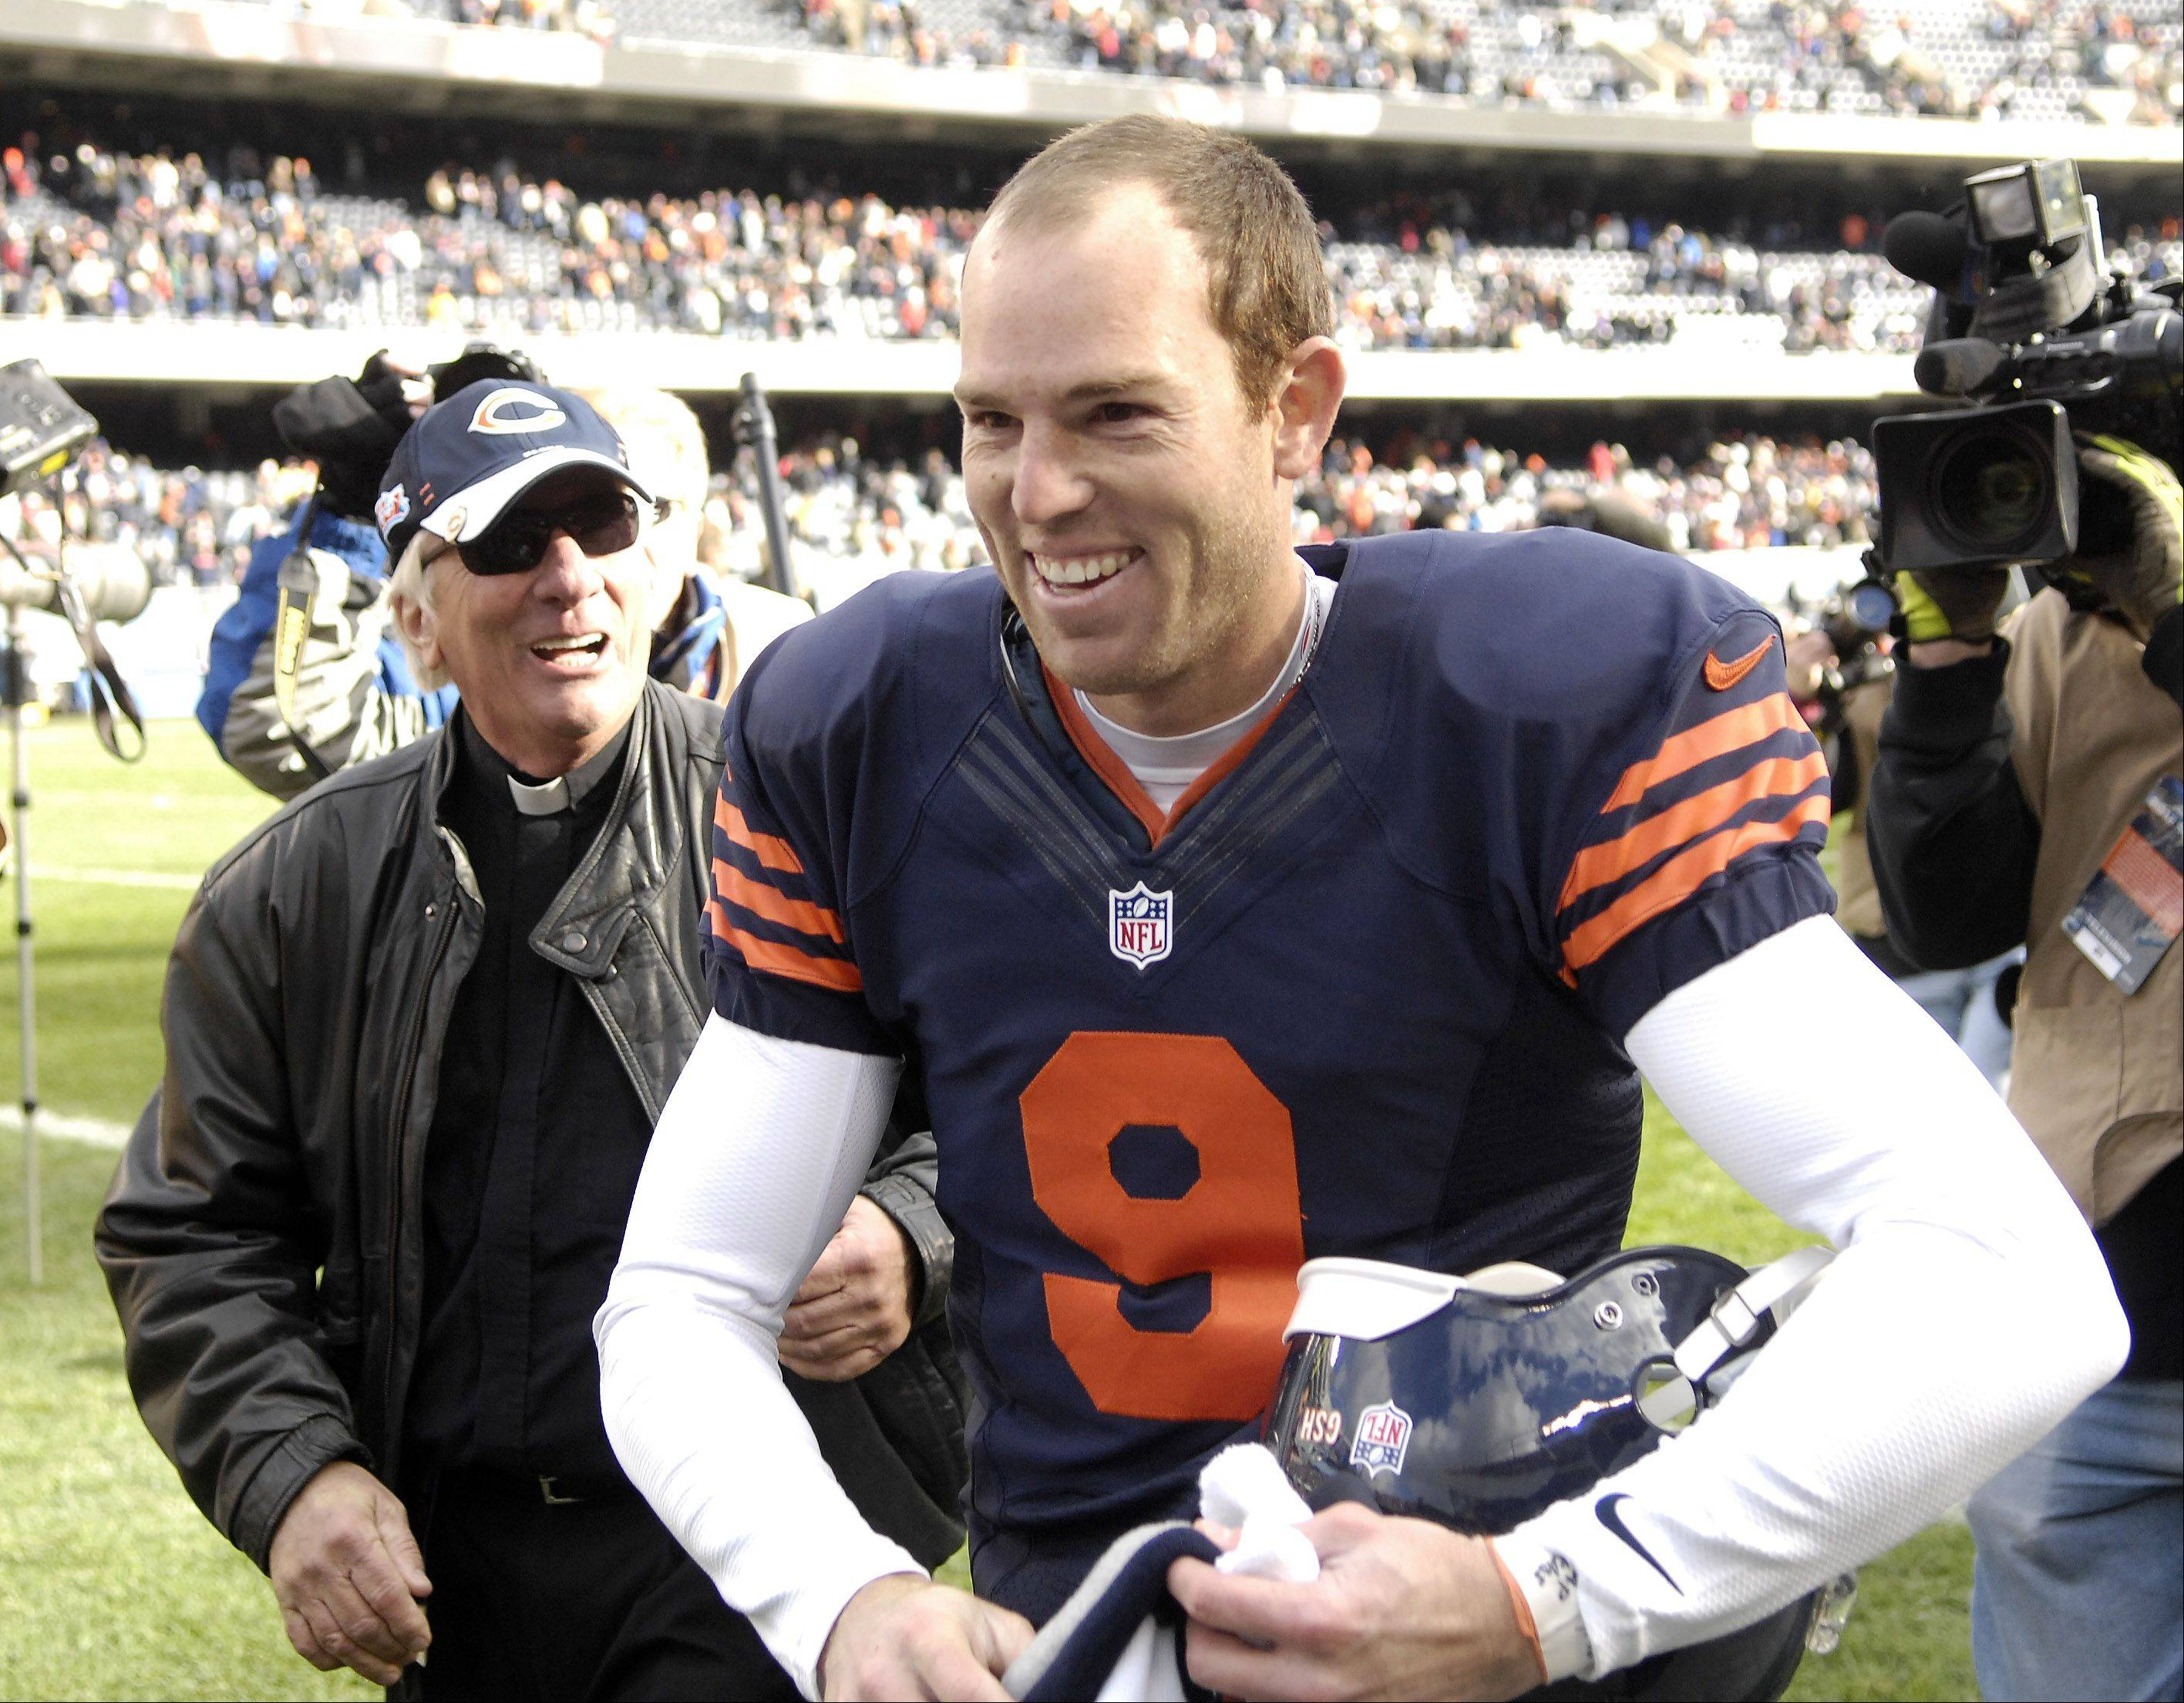 Chicago Bears kicker Robbie Gould (9) is all smiles as he leaves the field after his game-winning field goal during Sunday's game at Soldier Field in Chicago.